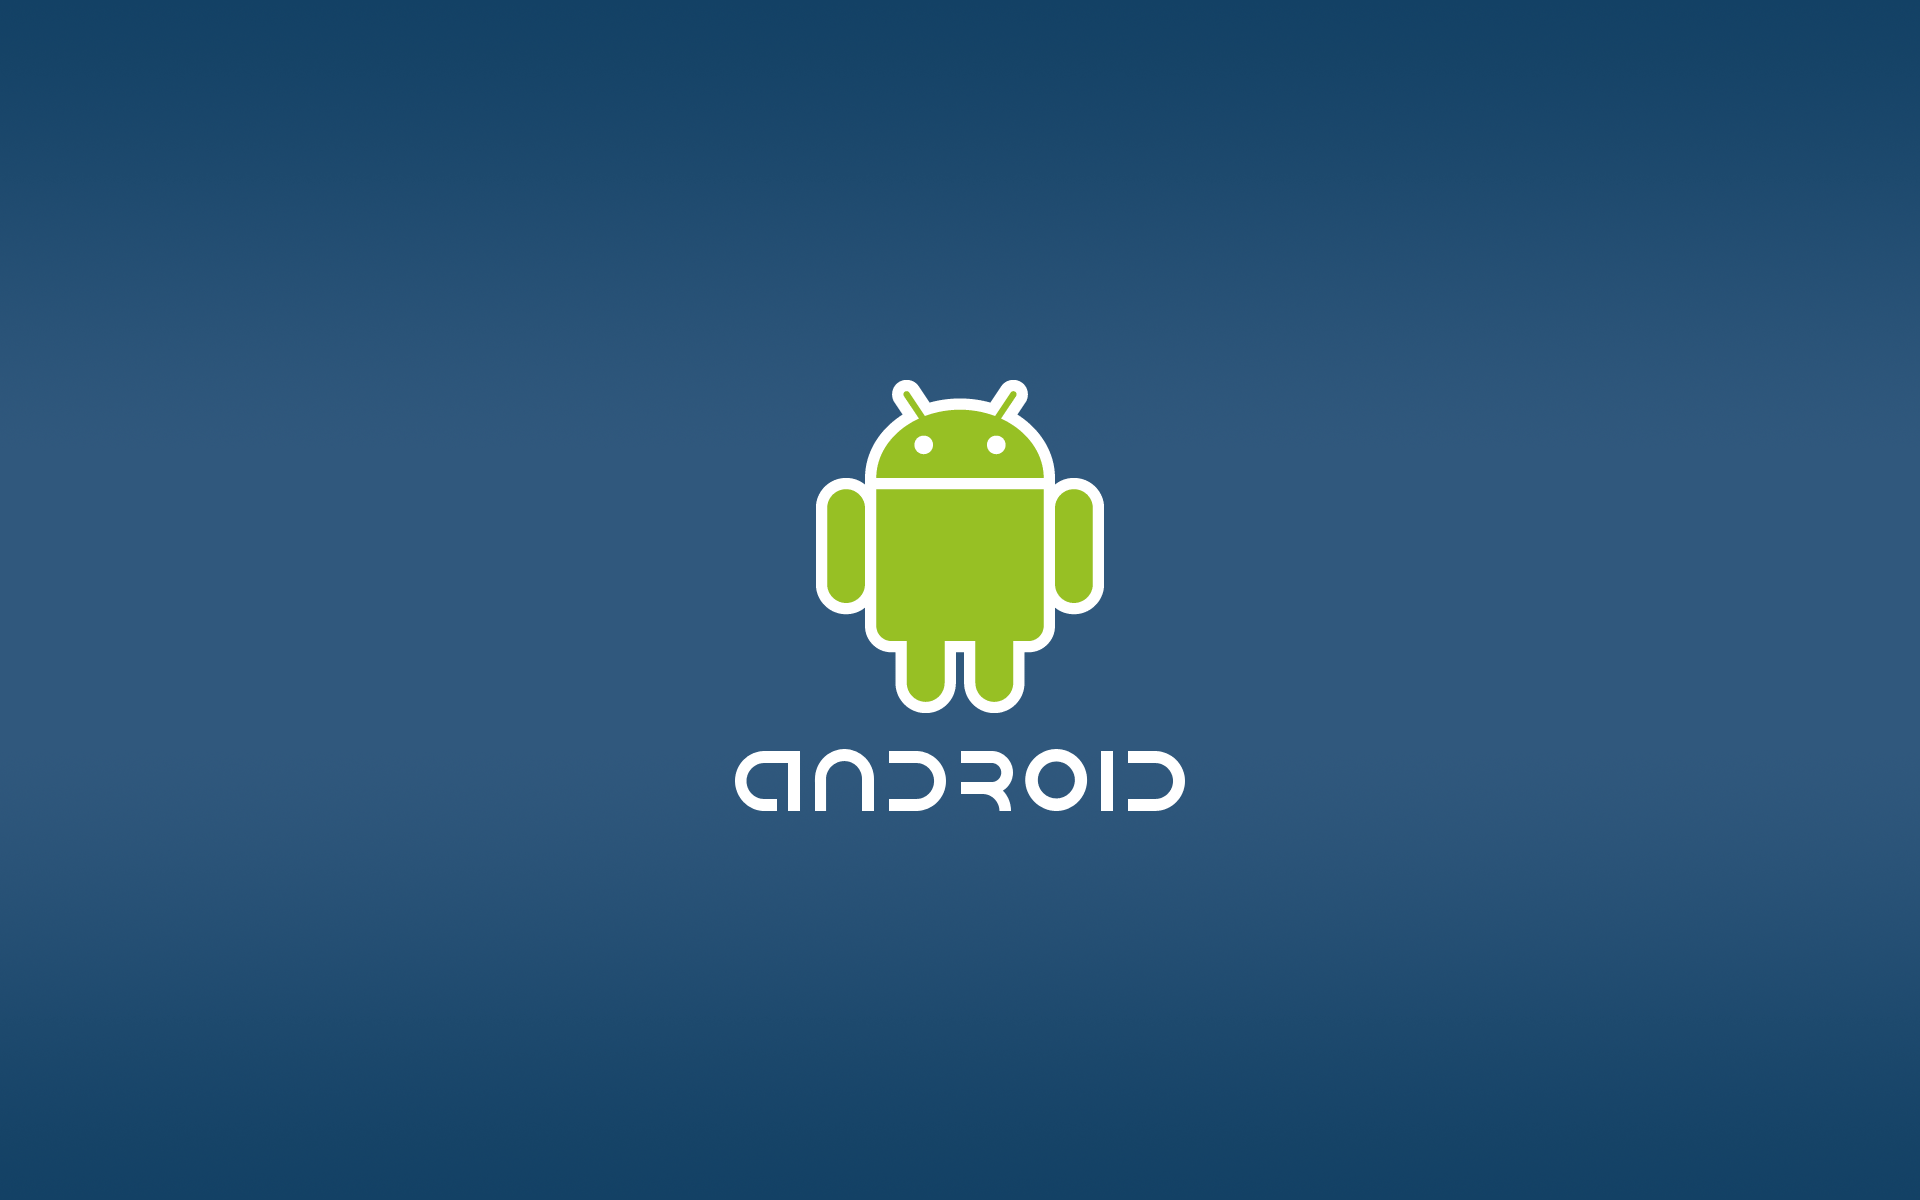 Android Phone Png Cool Wallpaper Size 1920x1200 AmazingPictcom 1920x1200